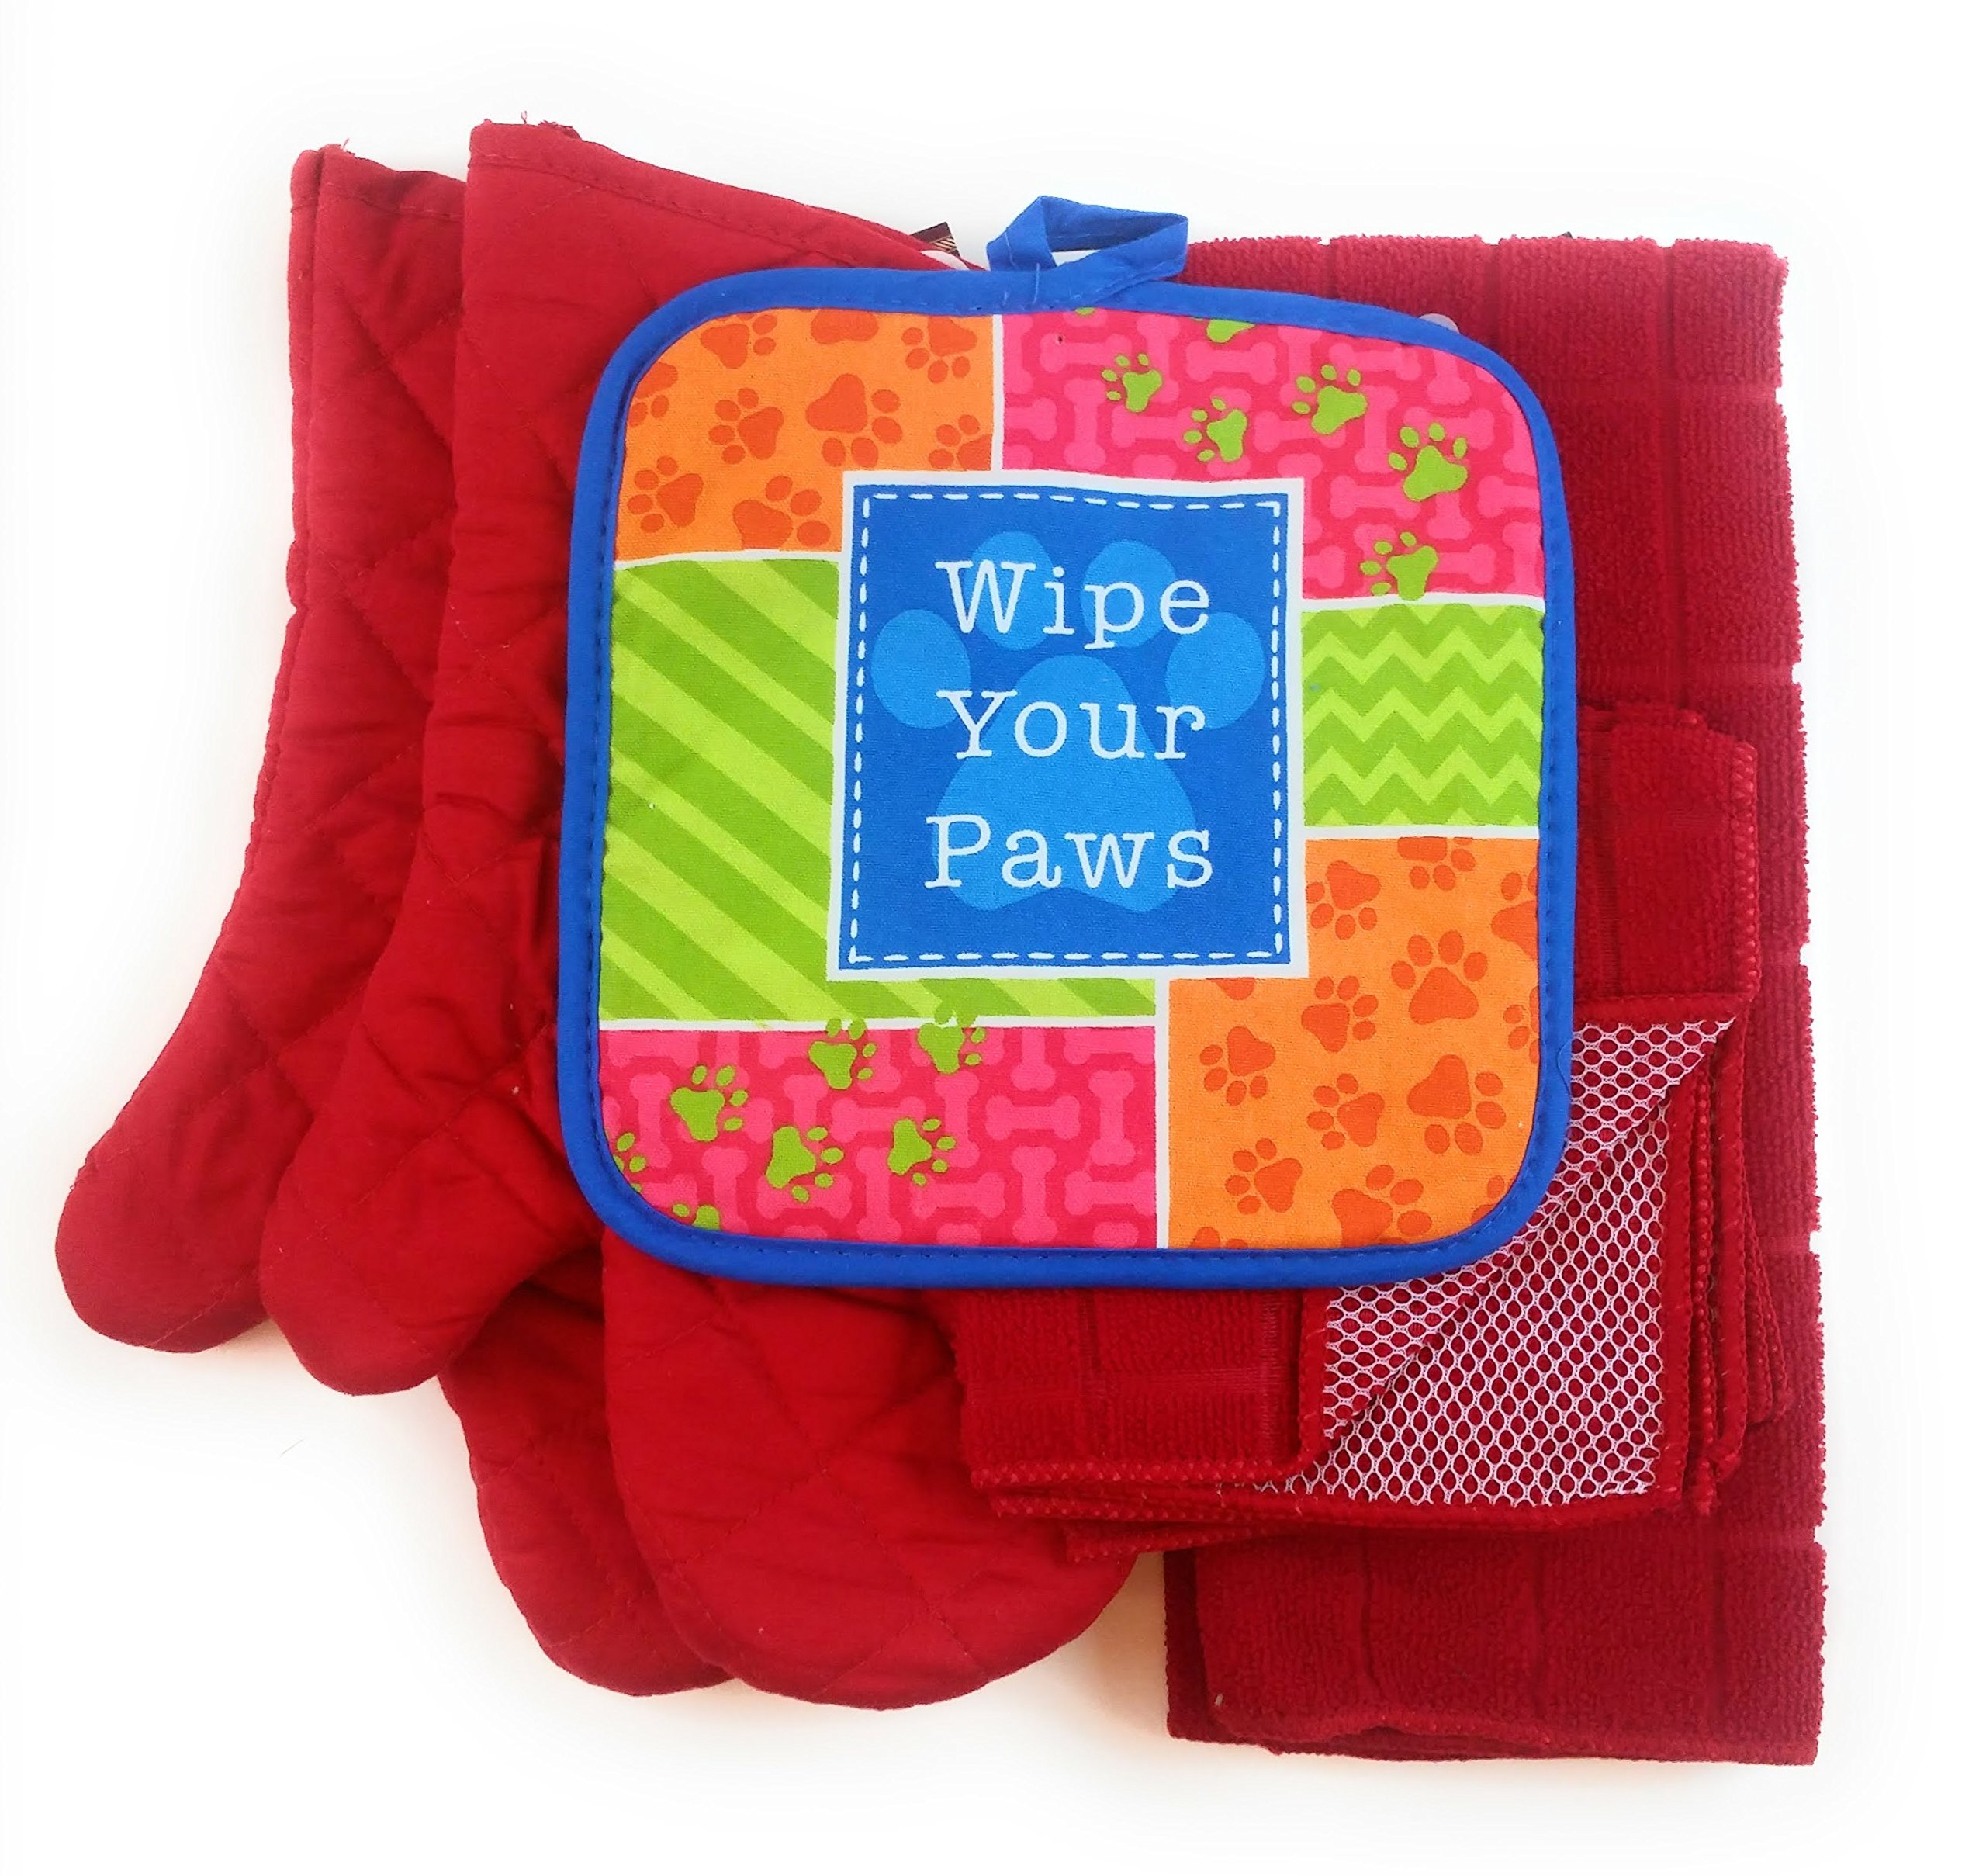 Wipe Your Paws Animal Lover 6 Piece Kitchen Linen Towel & Pot Holder Set